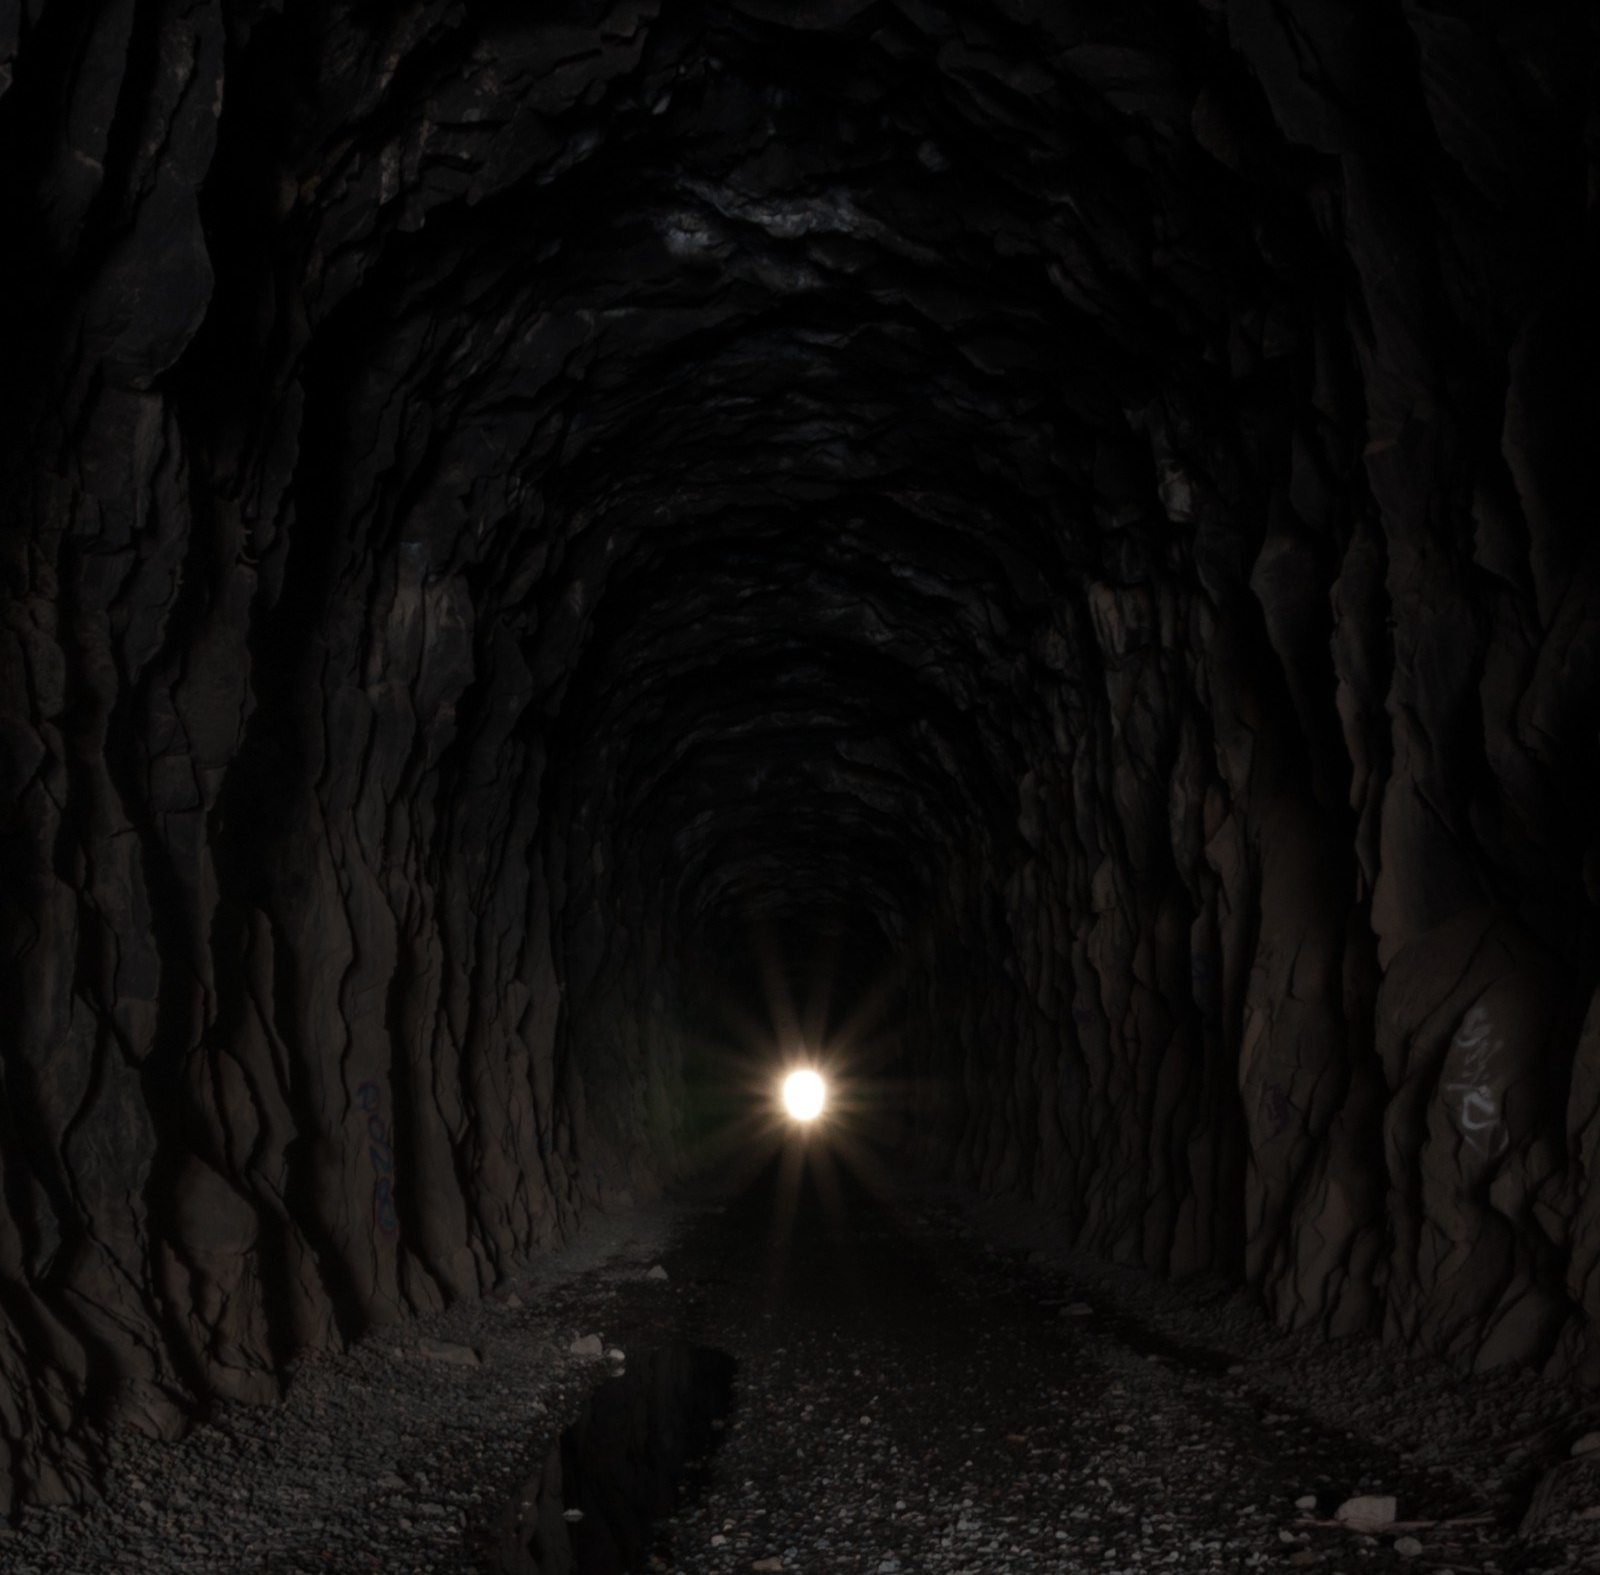 Light at the end of the tunnel of darkness